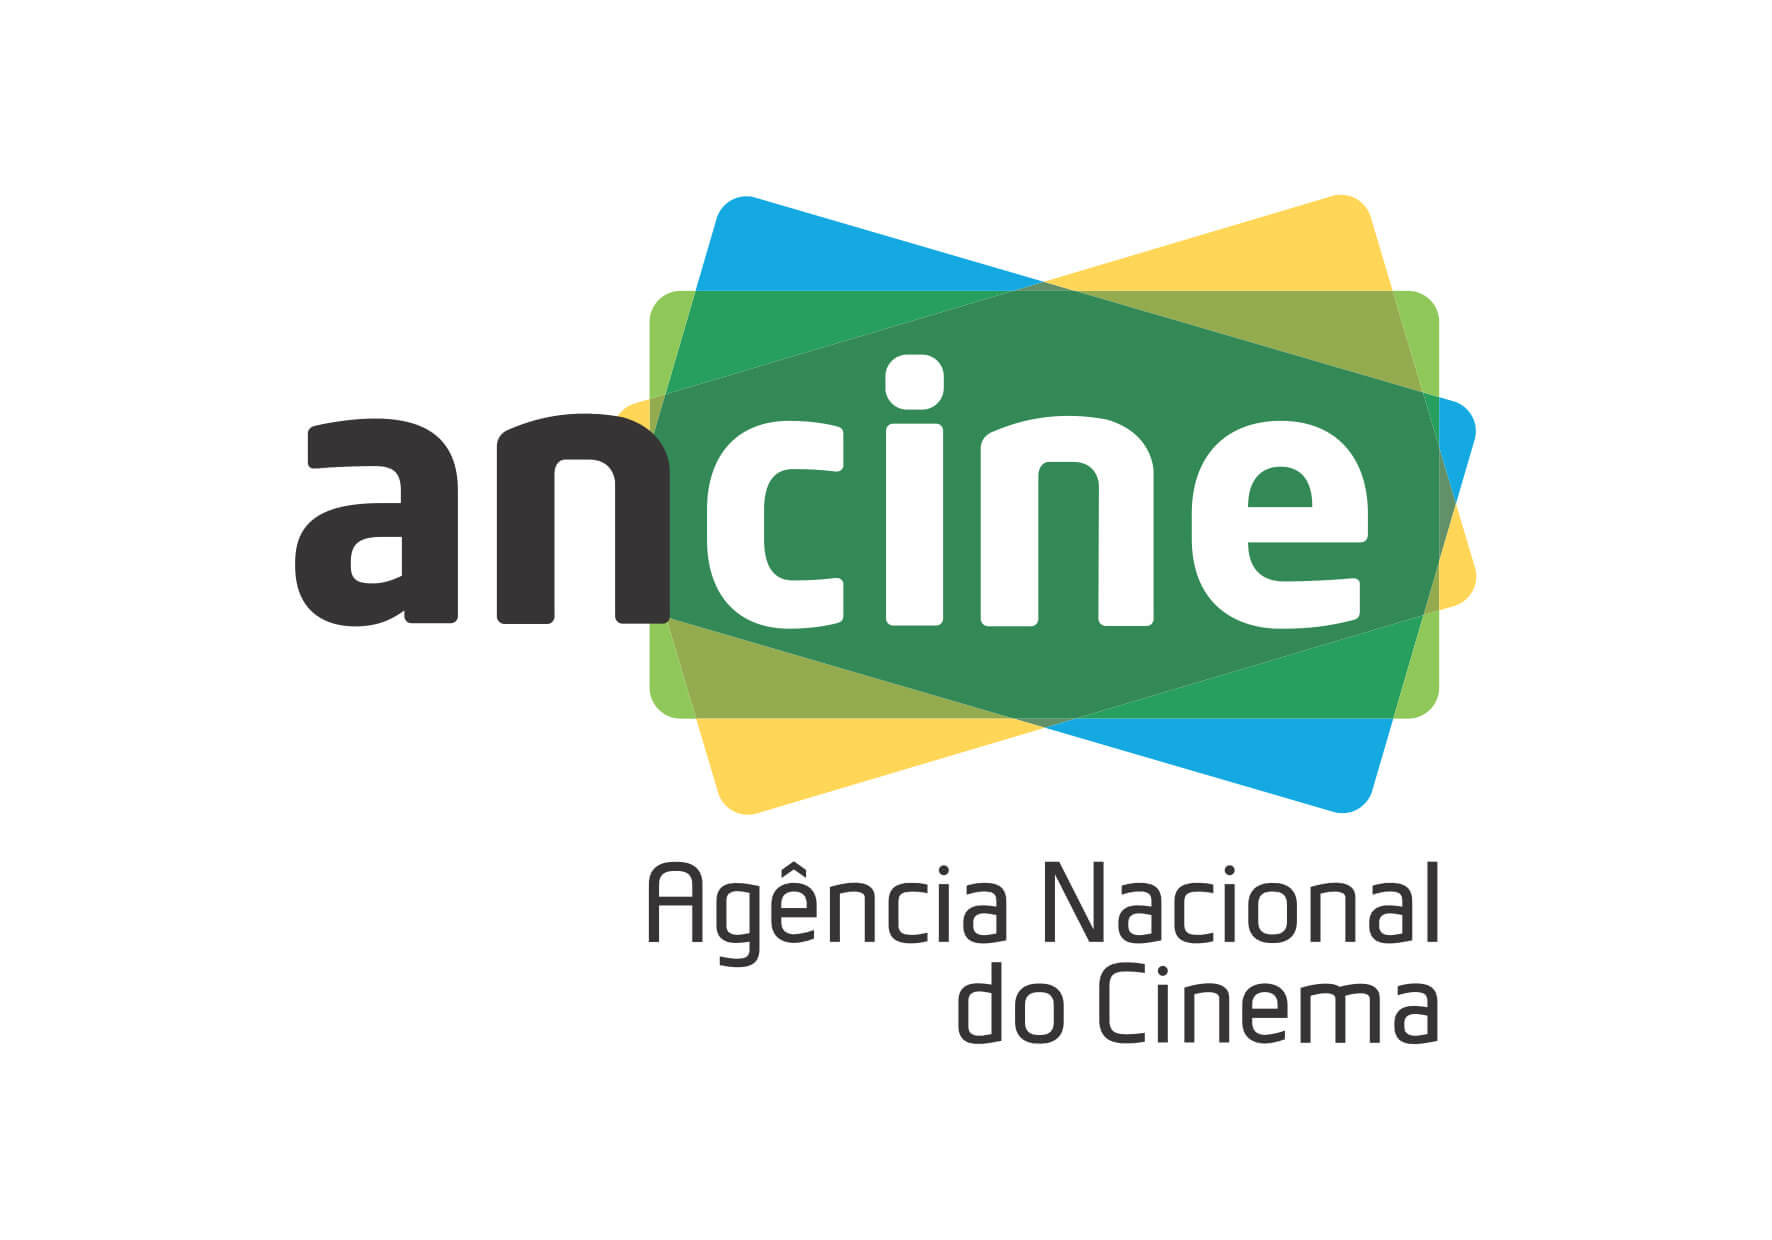 ancine logo 18 may 2017